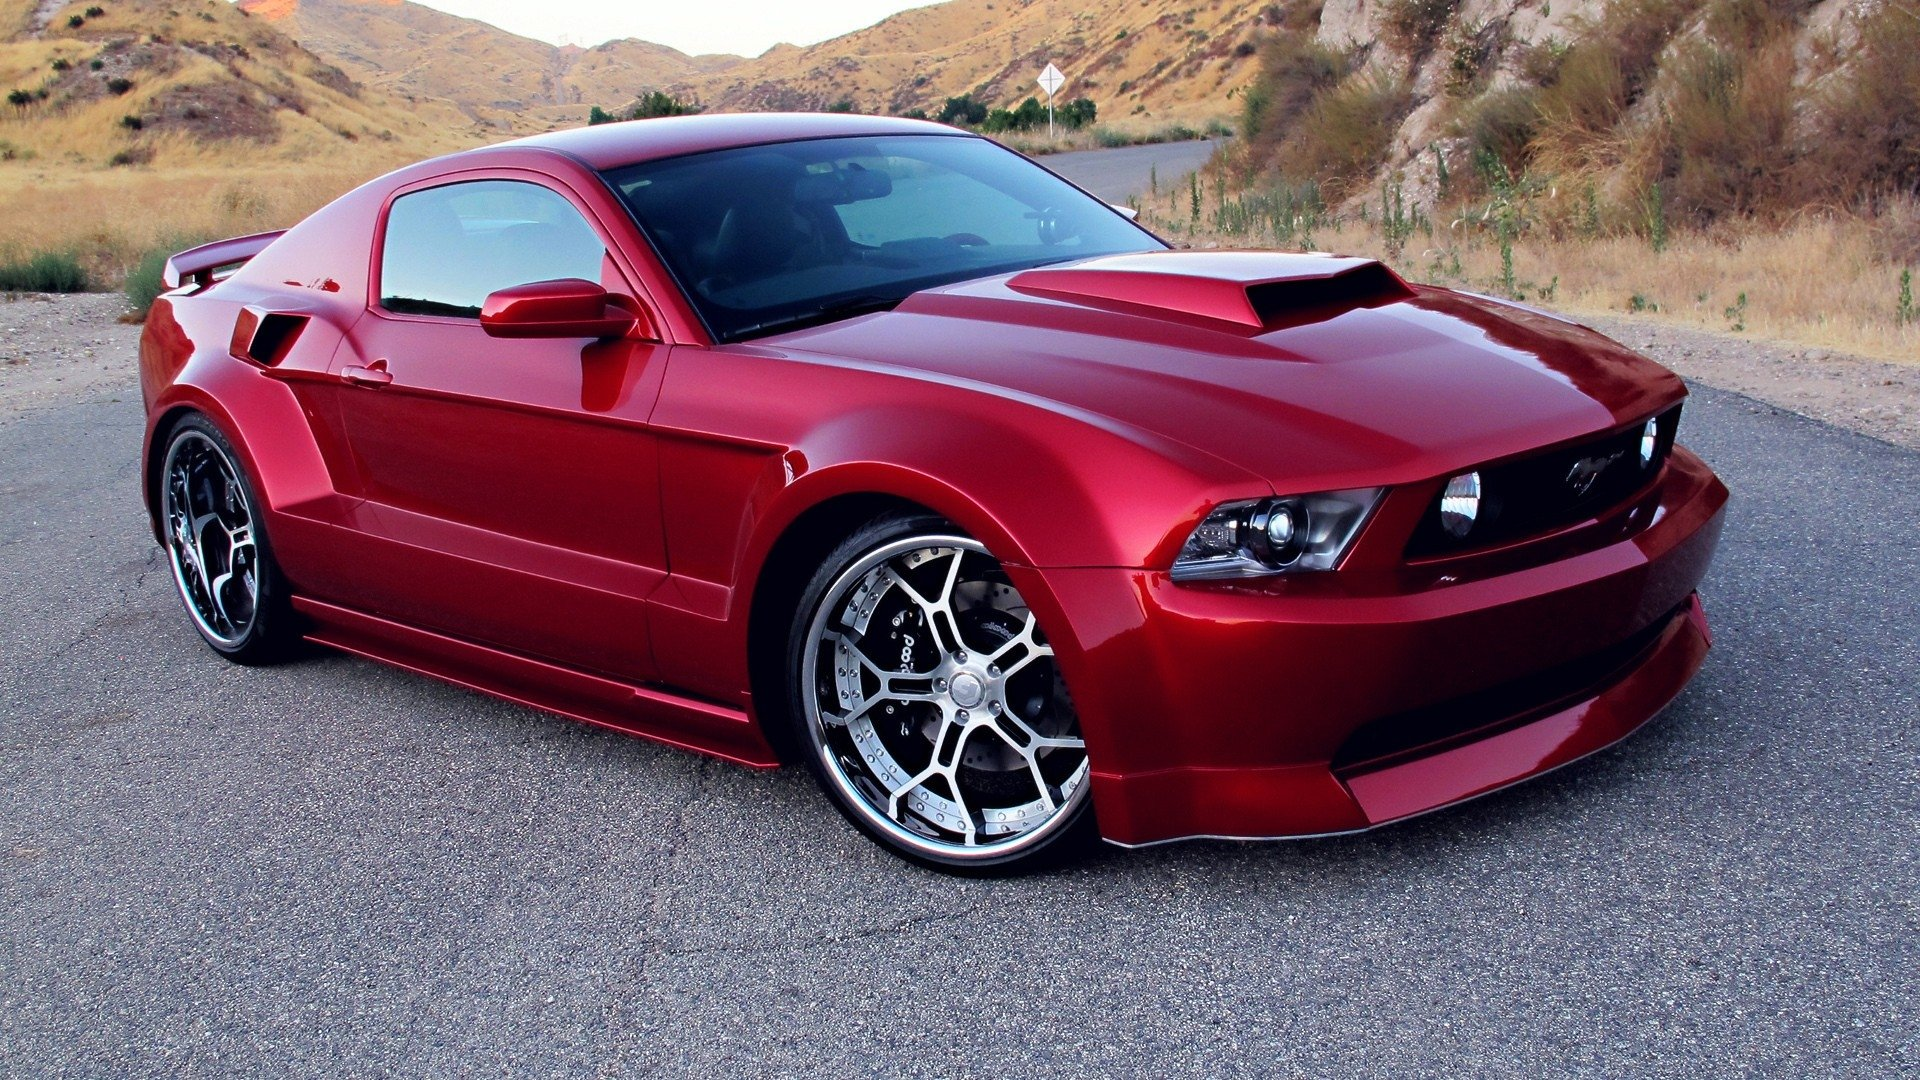 HD Wallpaper | Background Image ID:291473. 1920x1080 Vehicles Ford Mustang